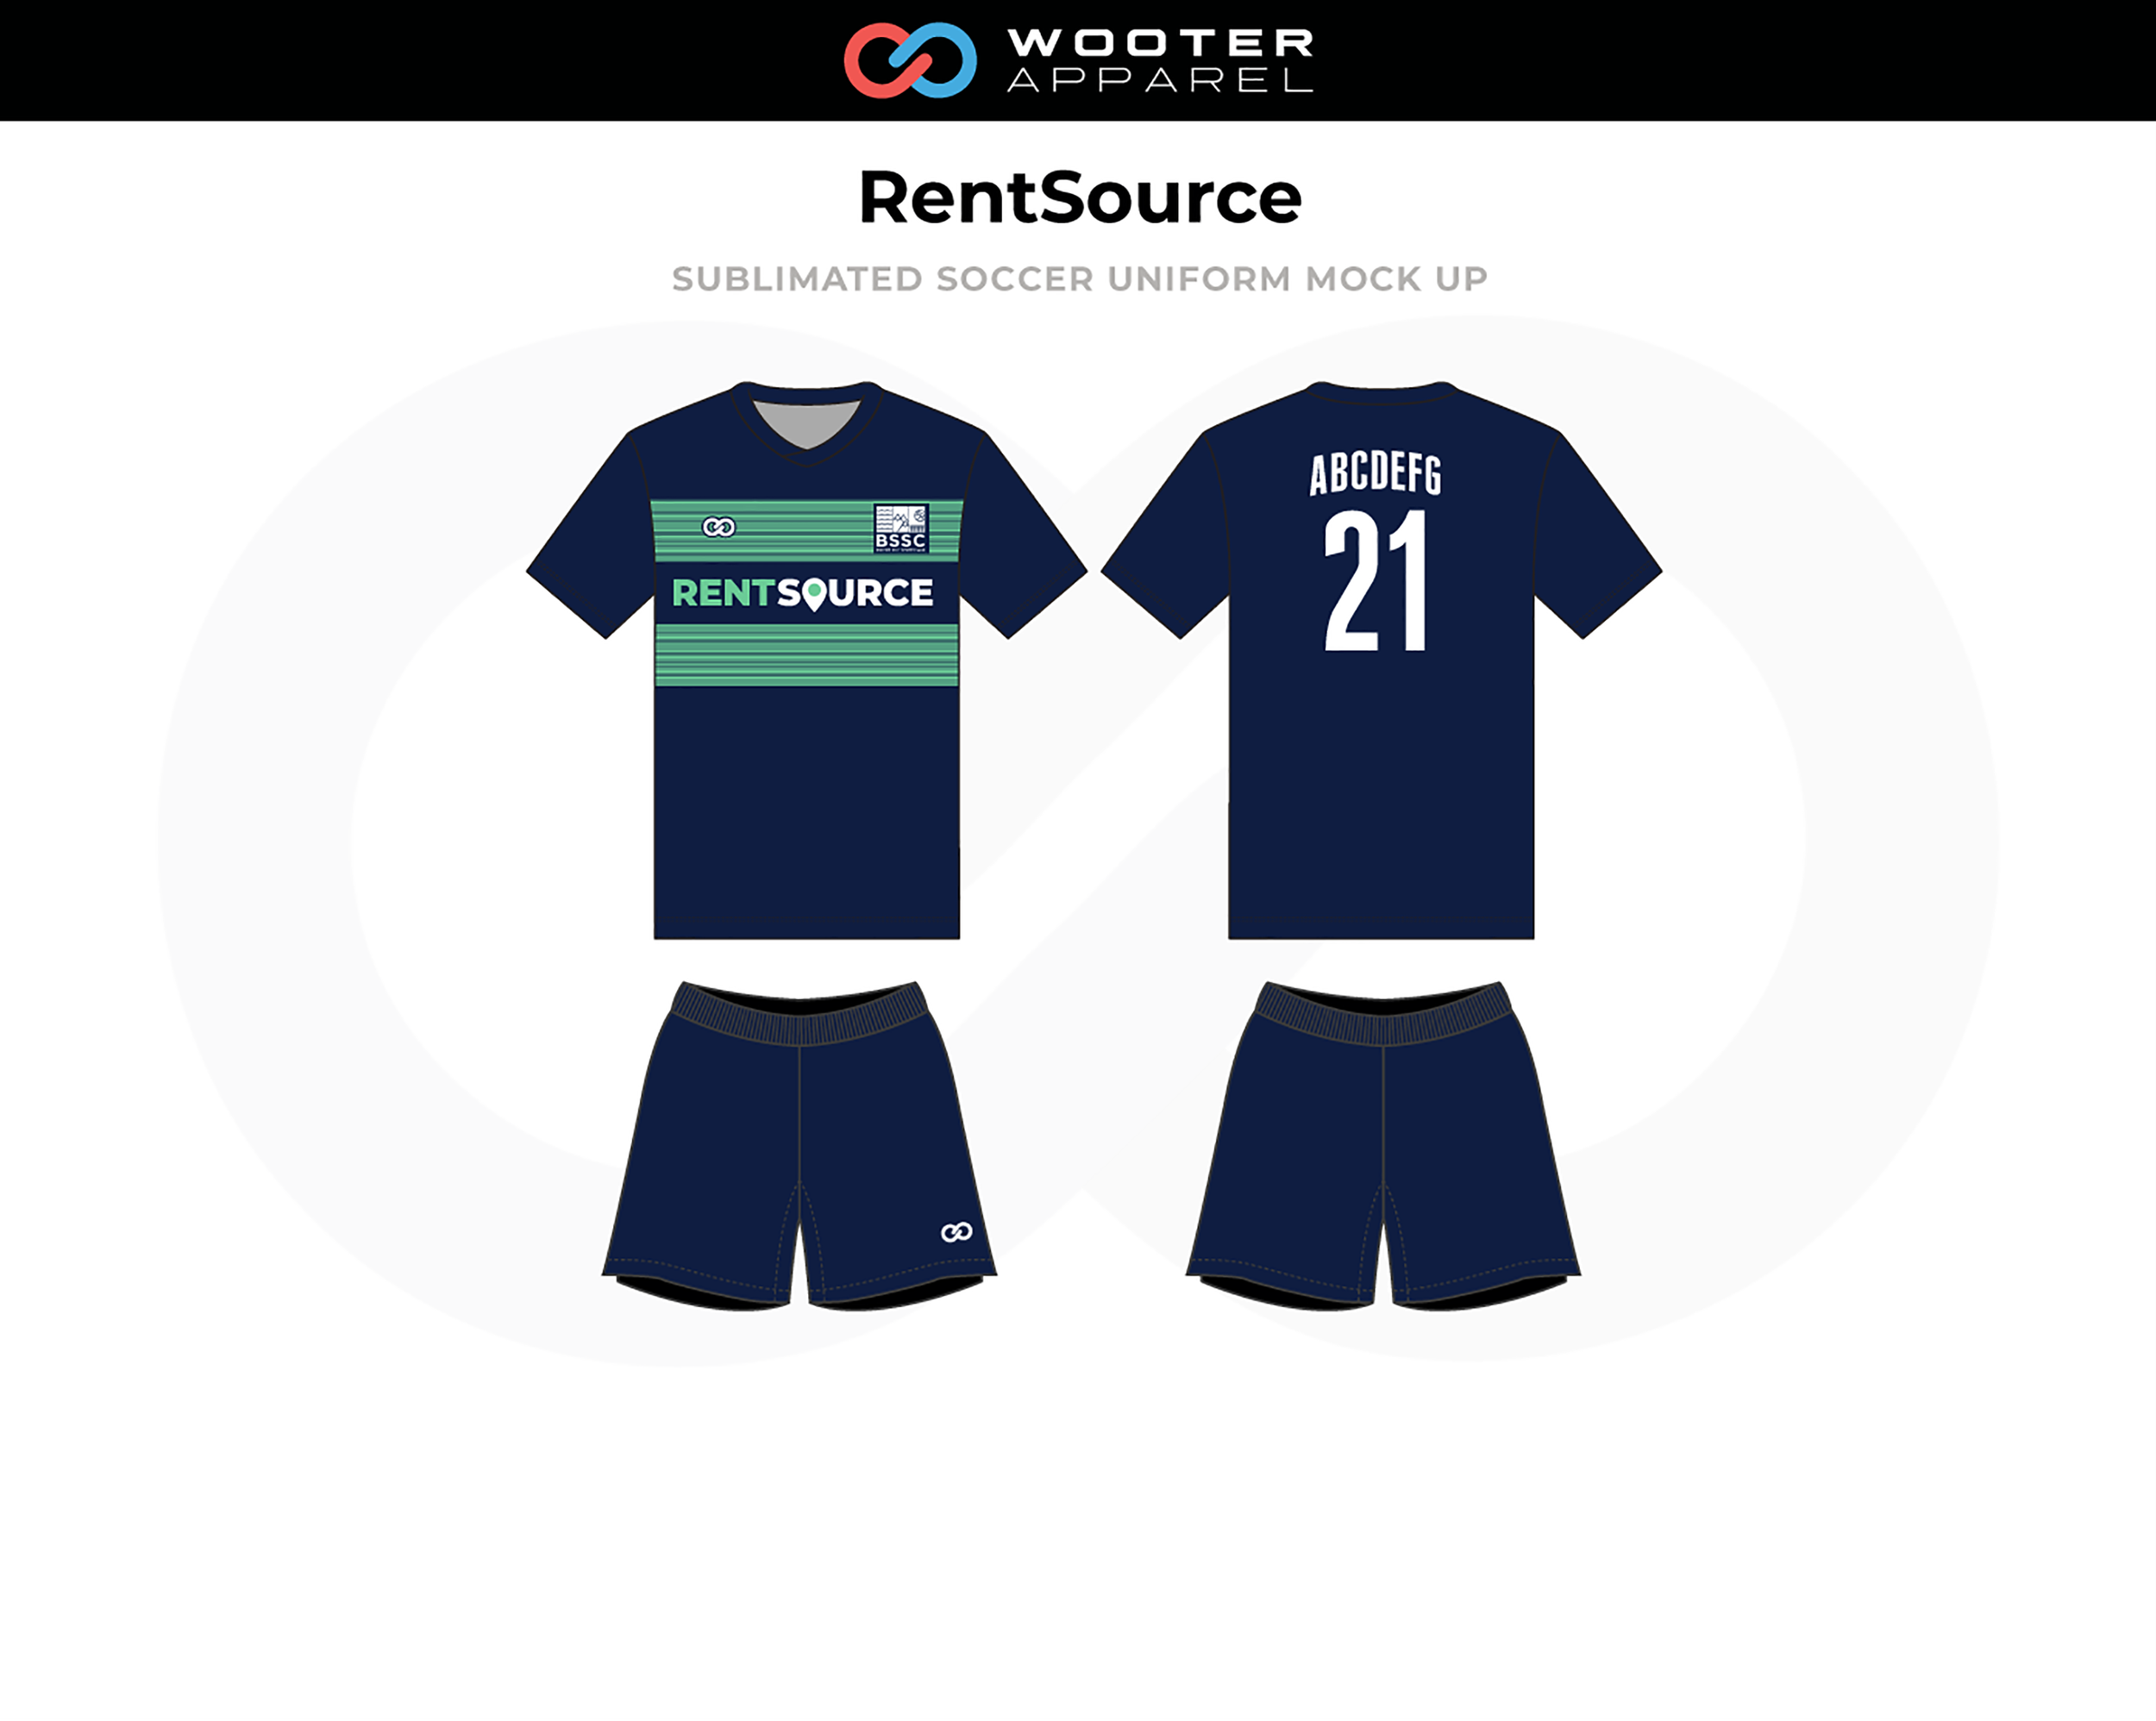 RENTSOURCE Navy Blue Green White Soccer Uniforms, Jerseys, and Shorts